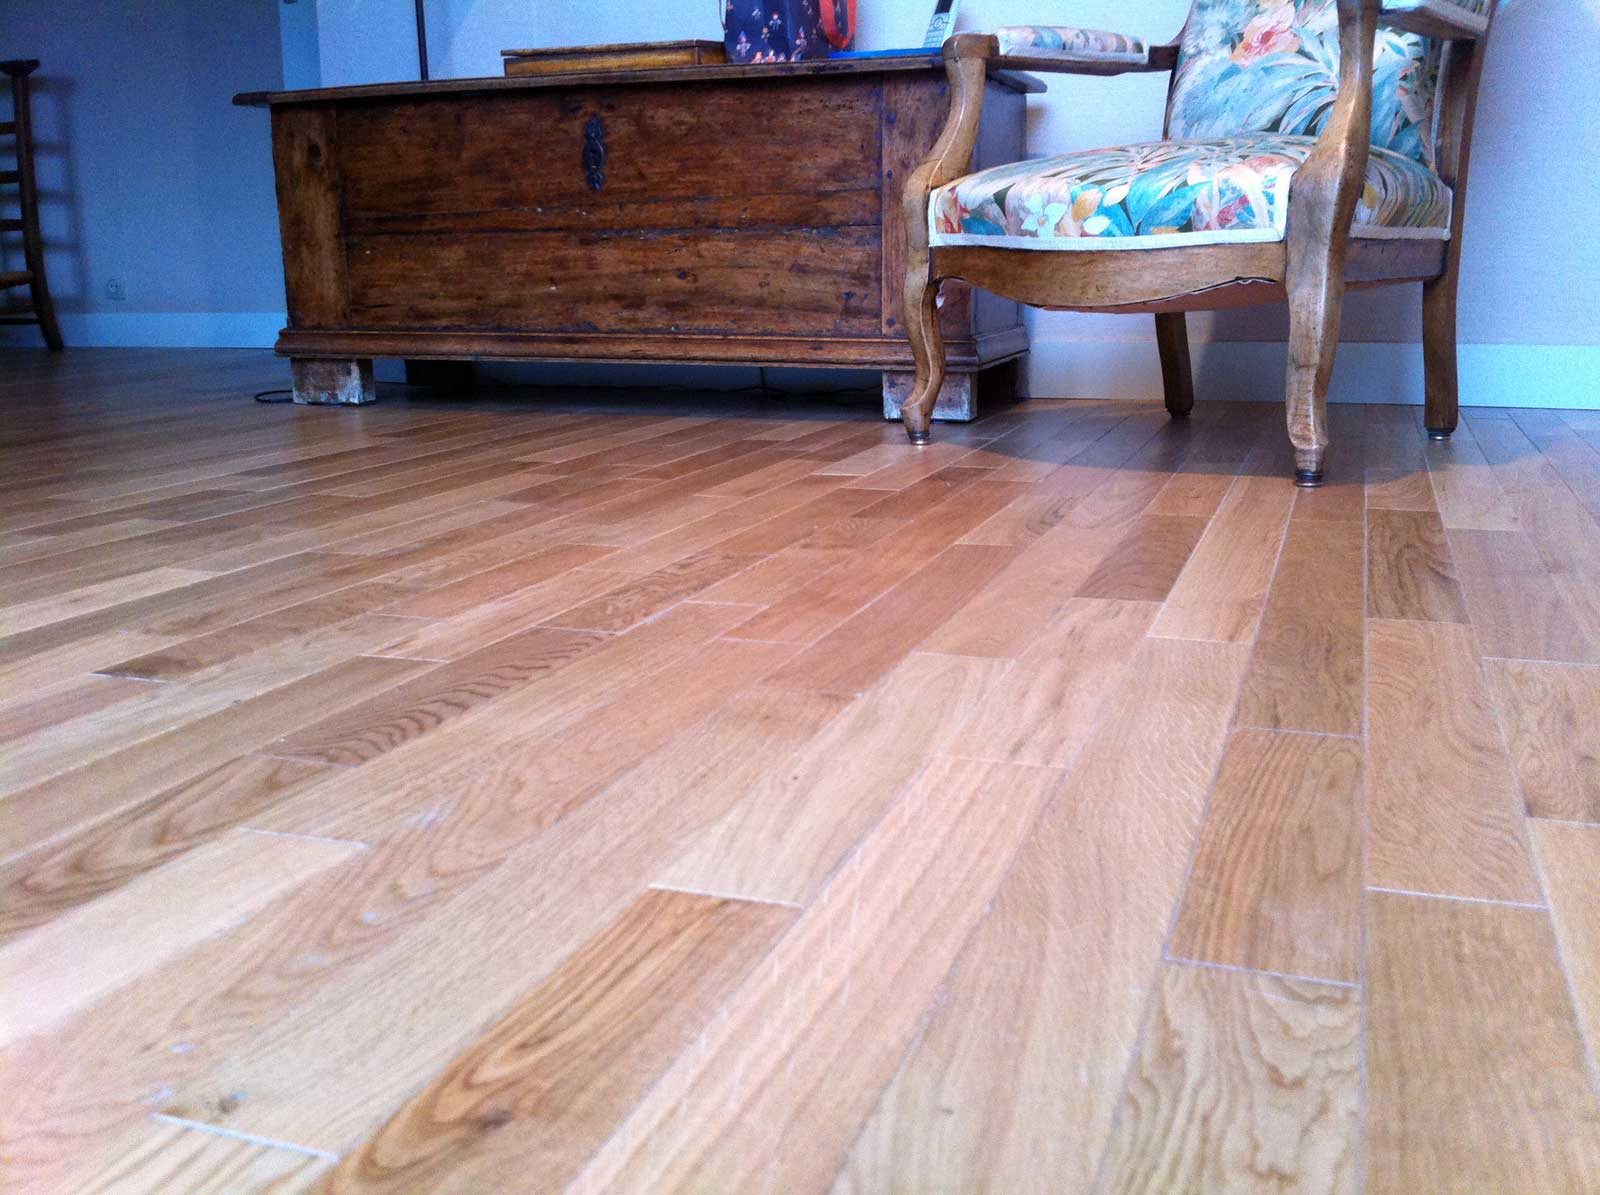 Renovation parquet ancien rnovation de parquet ancien un - Poncer parquet ancien ...